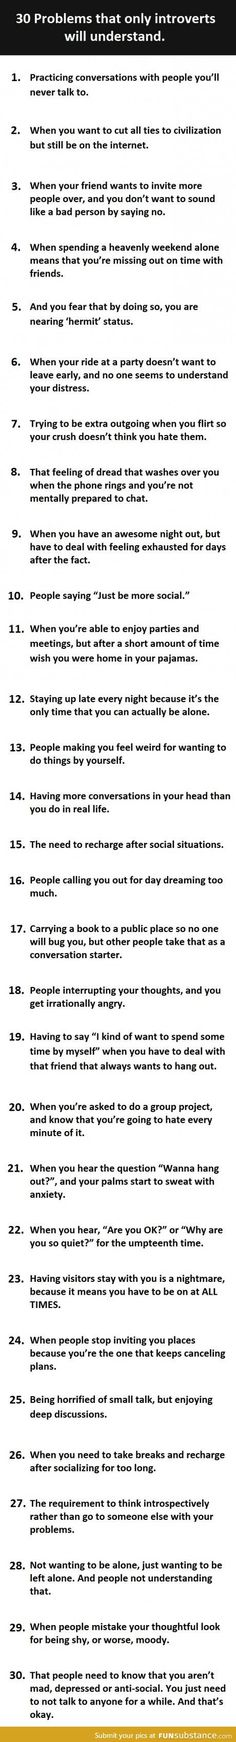 Never considered myself an introvert but I can definitely relate to some of these